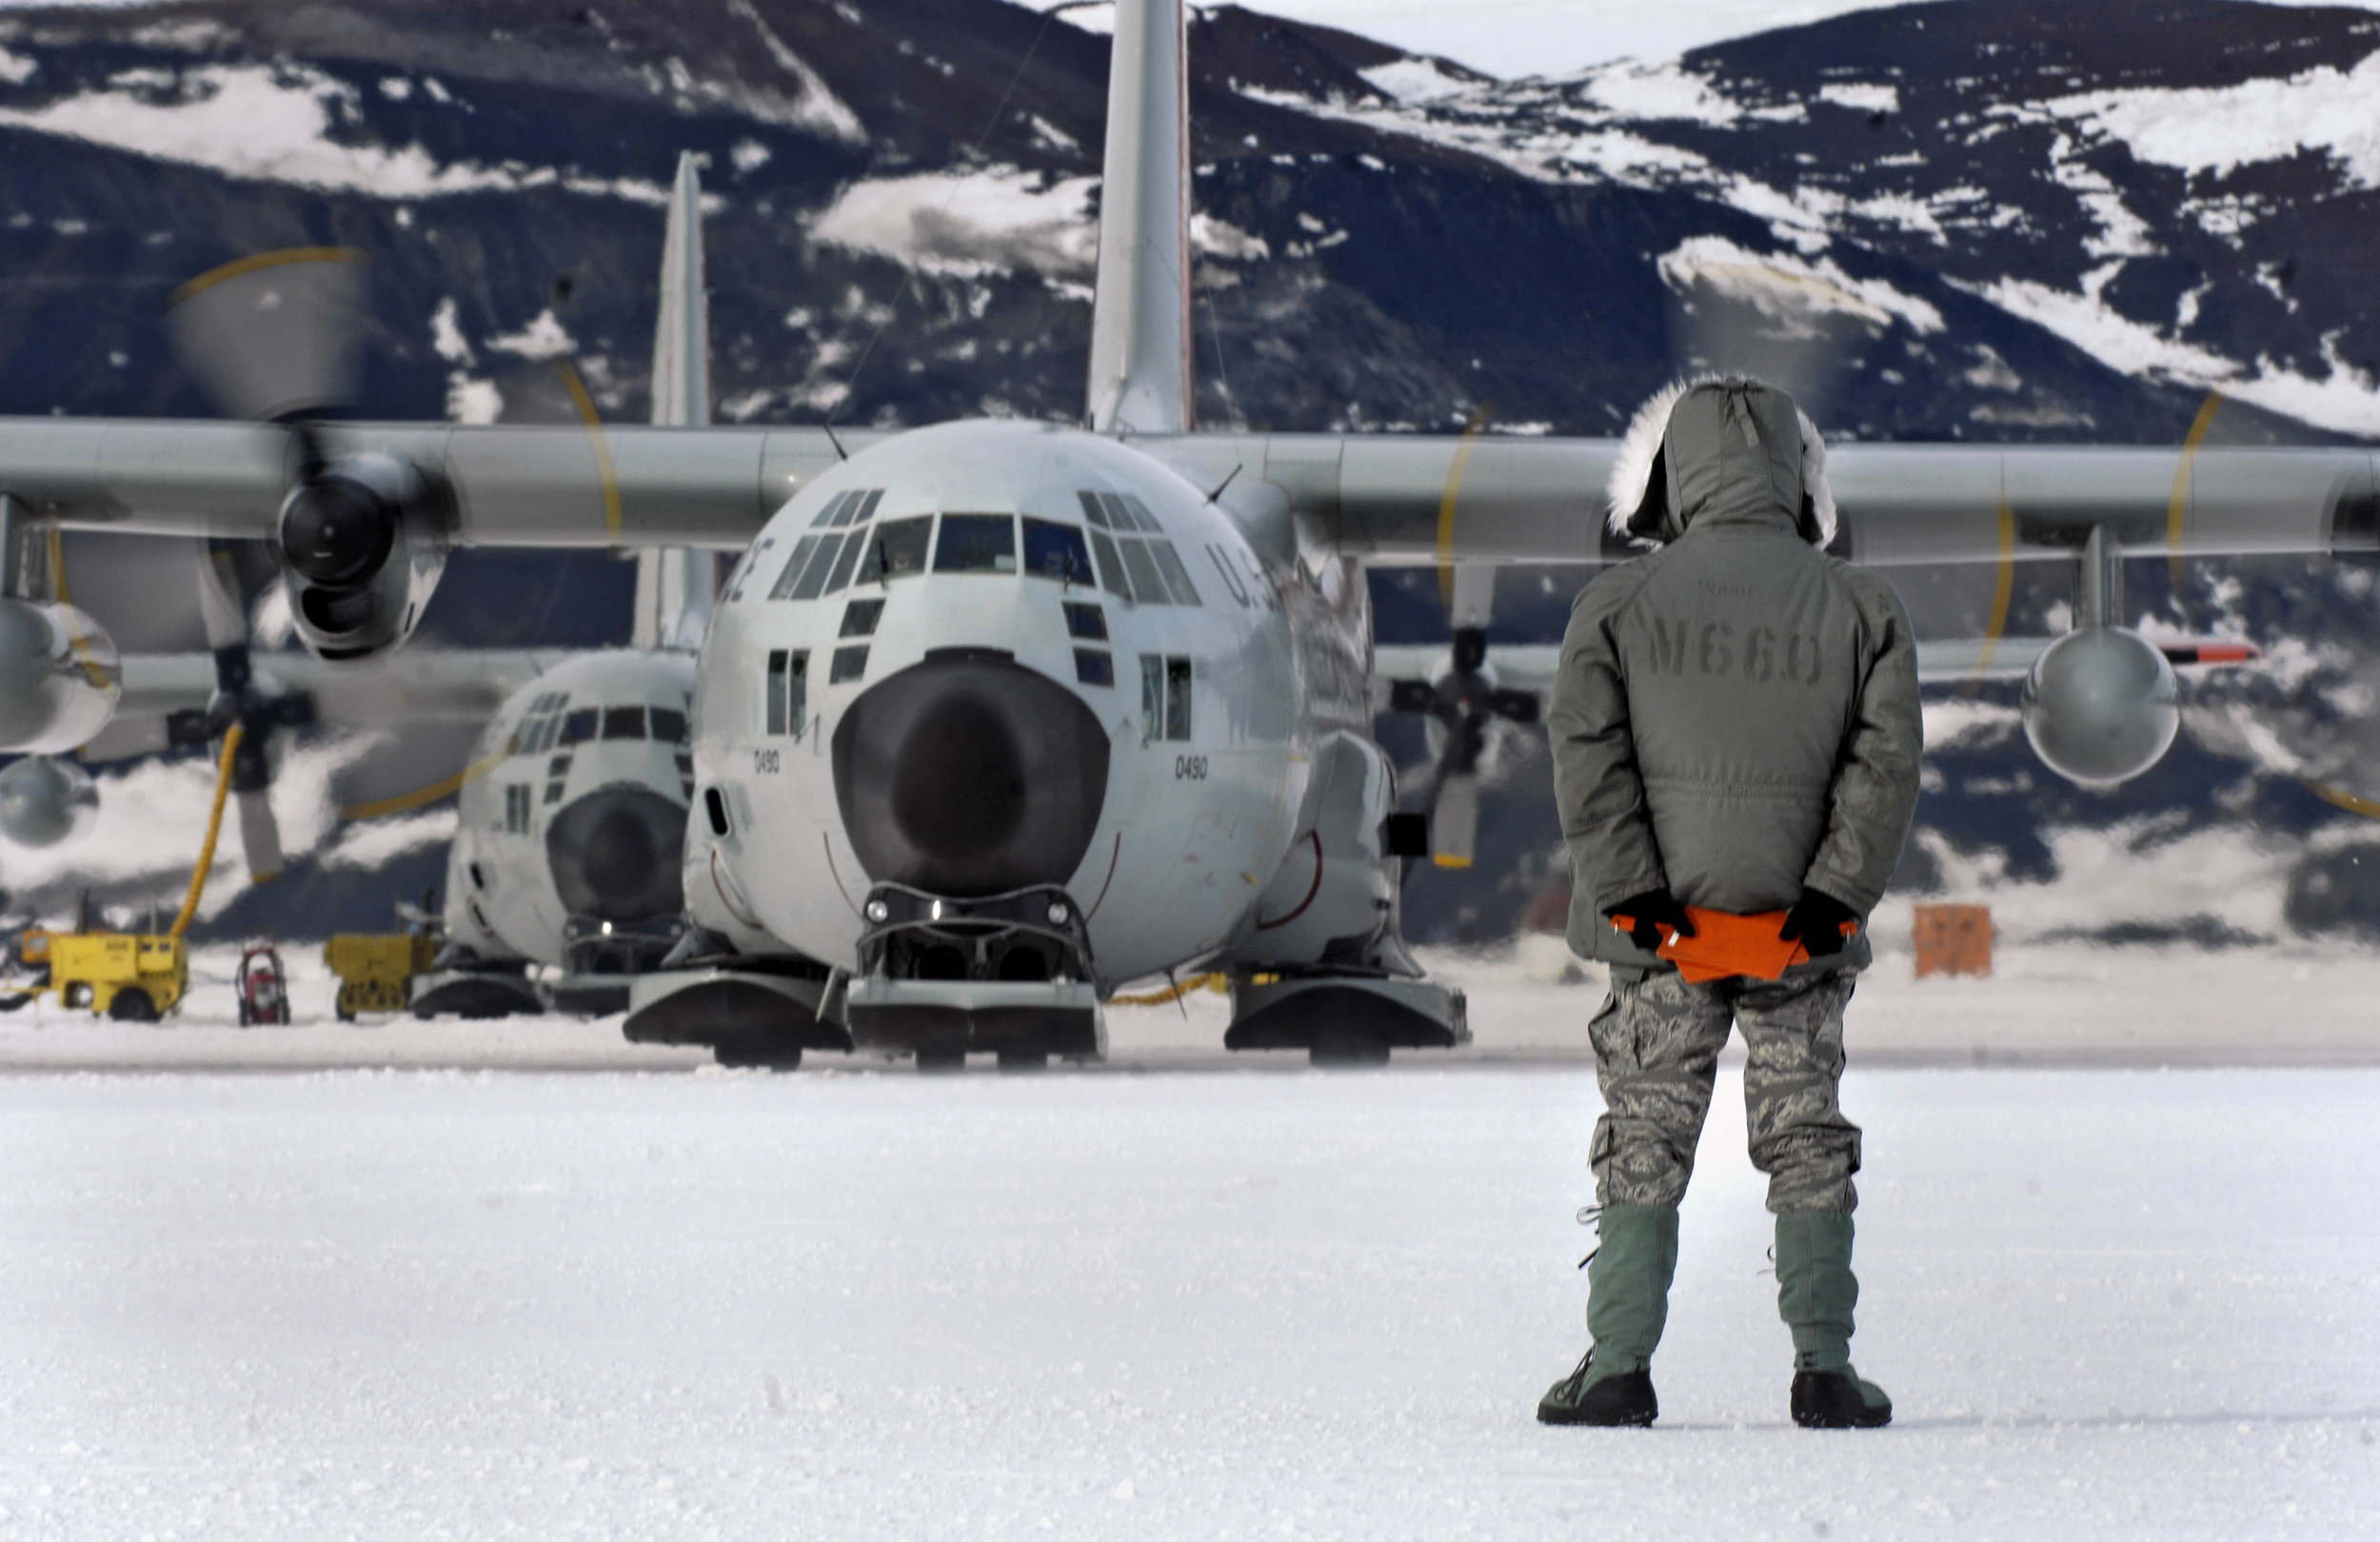 On the sea-ice runway at McMurdo Station, Antarctica, where the unit supports the NSF's antarctic research. Photo courtesy ANG 109th